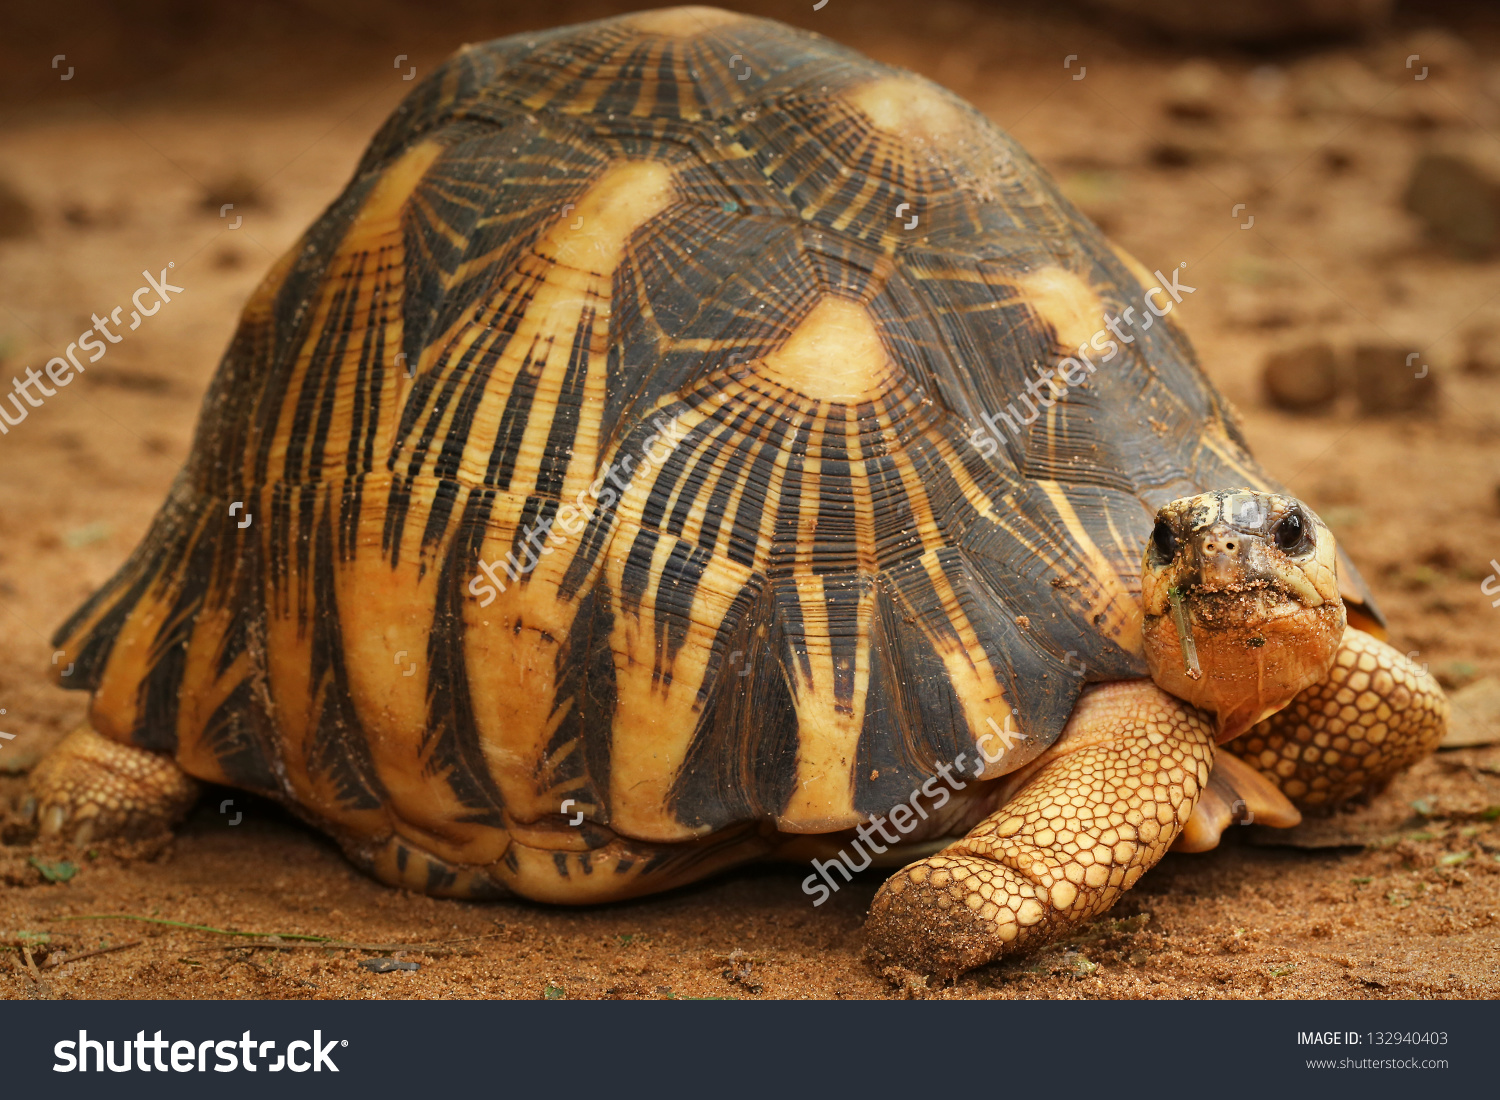 Radiated Tortoise clipart #9, Download drawings